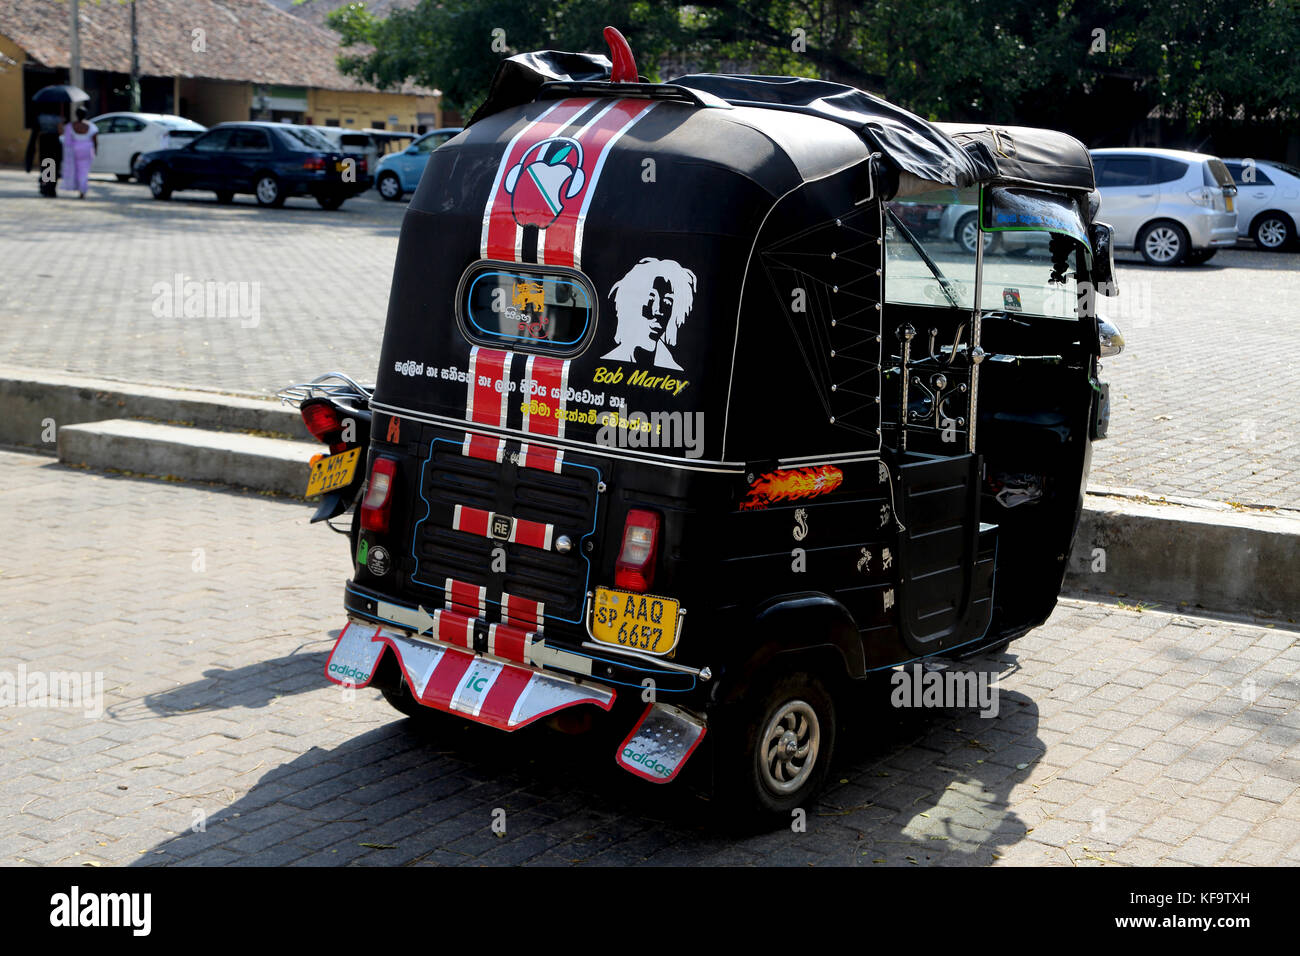 Galle fort galle southern province sri lanka tuk tuk with picture of bob marley and adidas